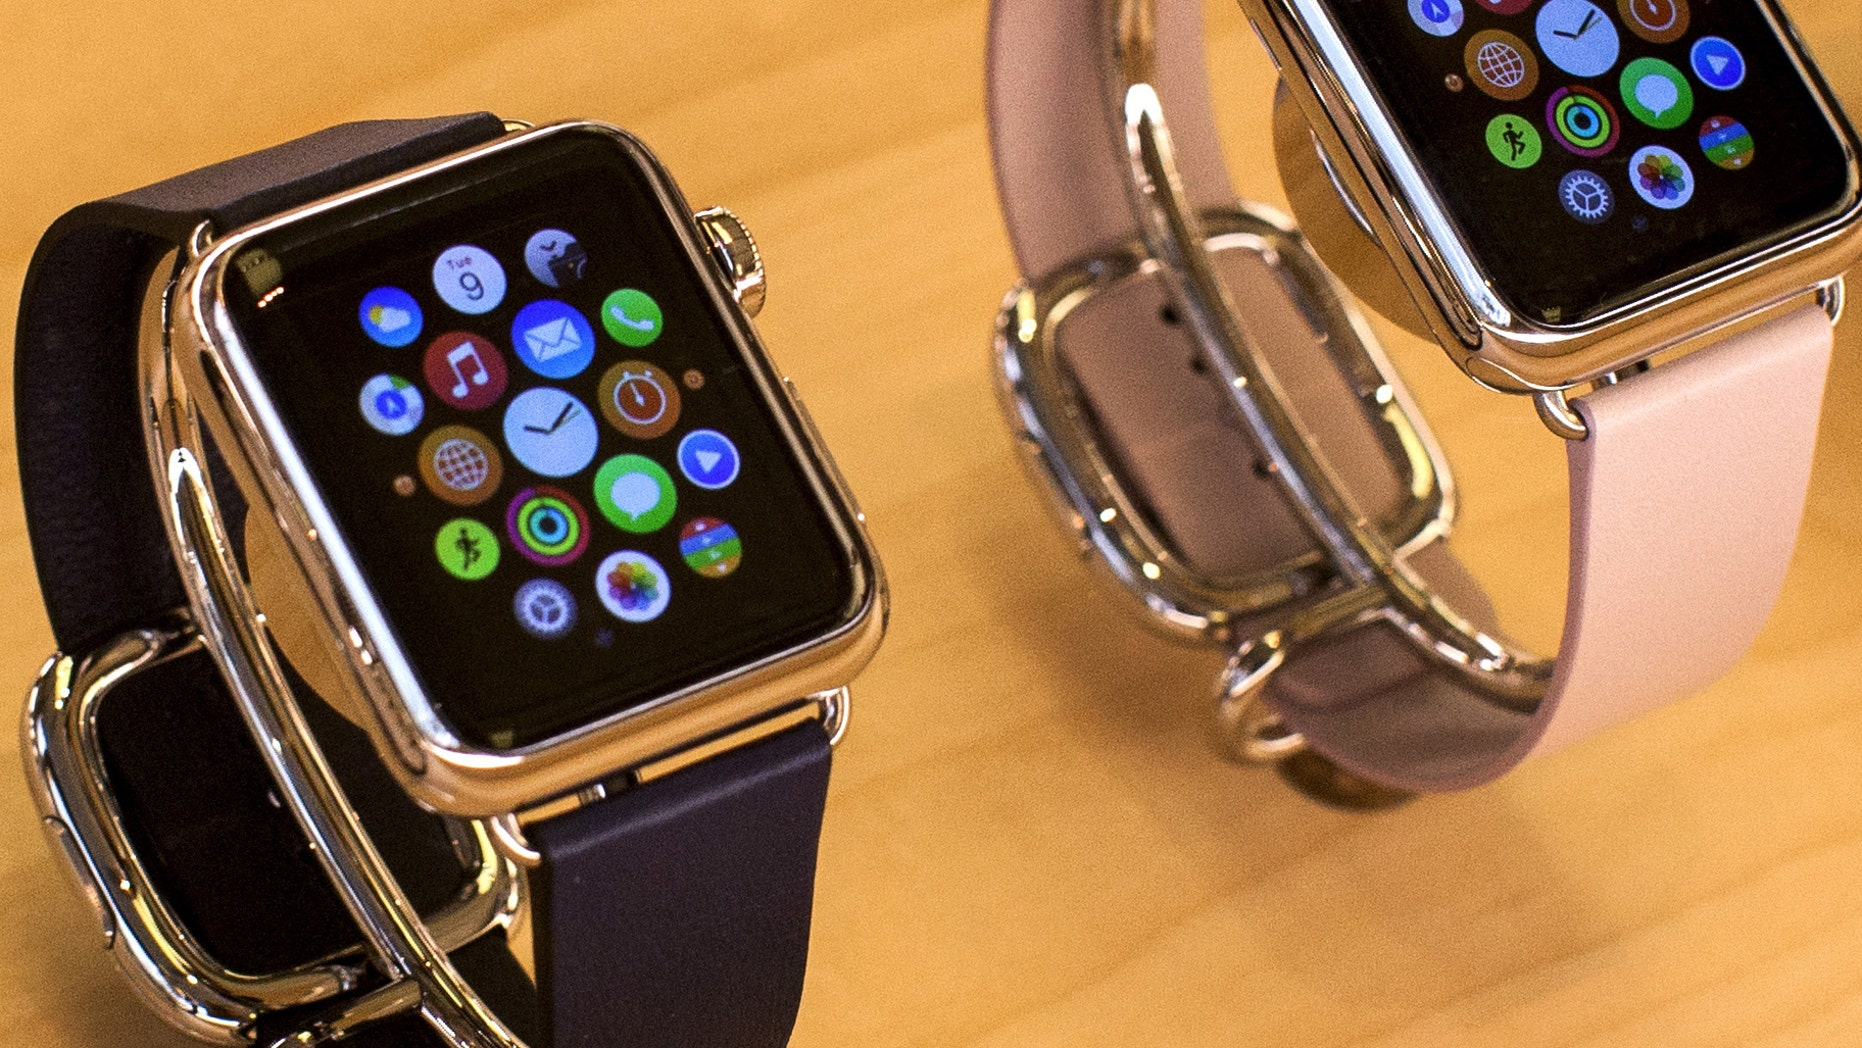 Apple Watches are seen on display at the Apple store on 5th Avenue in the Manhattan borough of New York City, July 21, 2015.